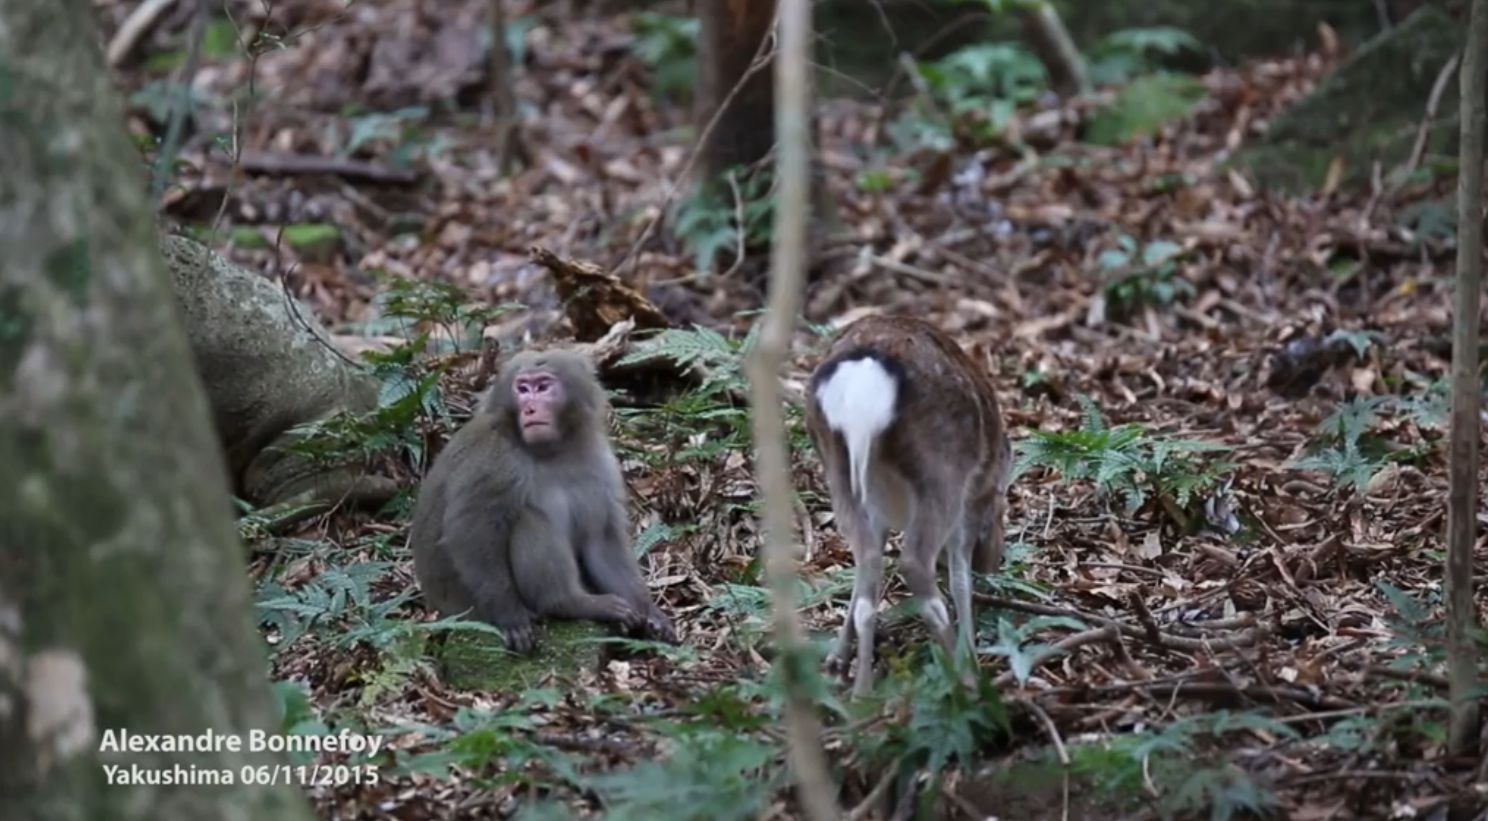 Japanese macaques homosexual behavior